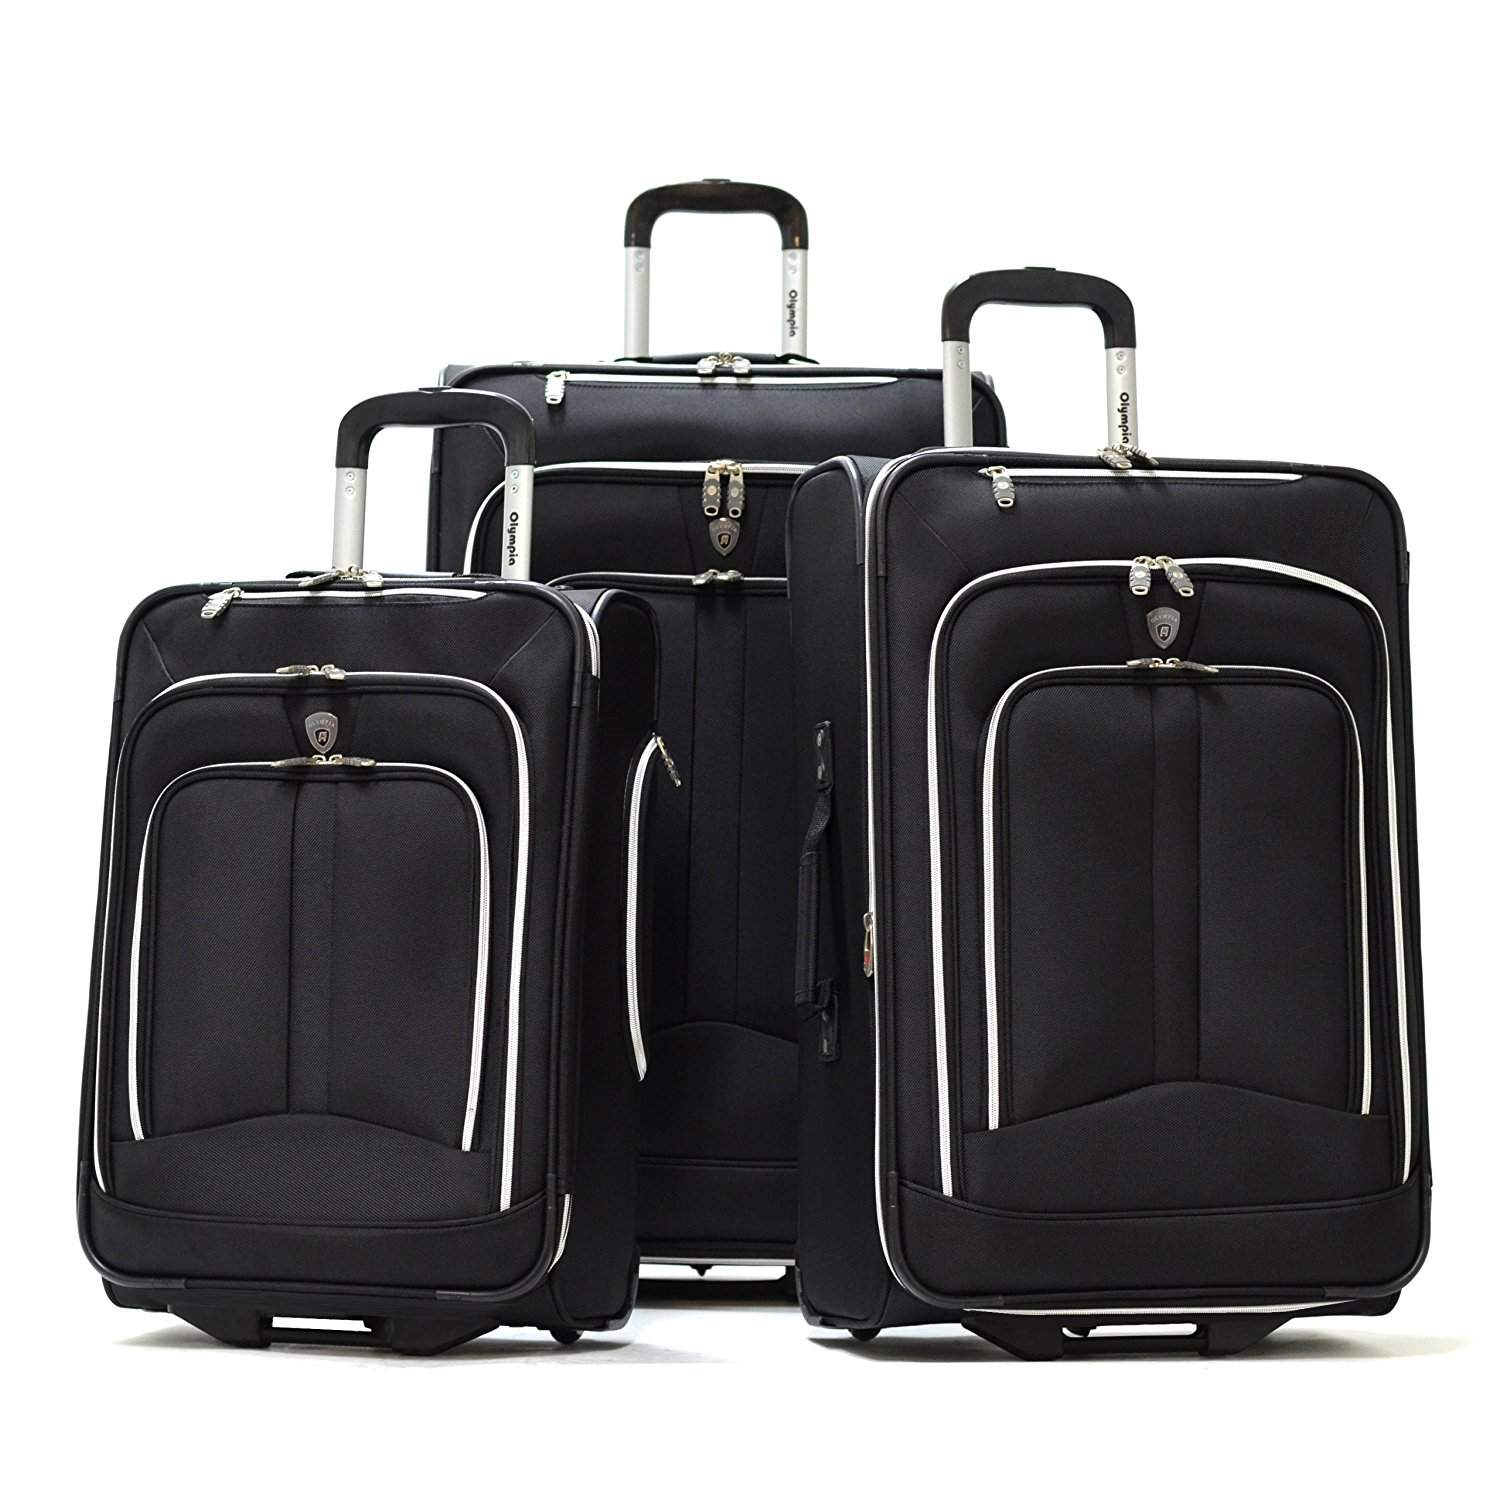 Best Overall  Olympia Hamburg Three-Piece Luggage Set 06bef94bbbf89